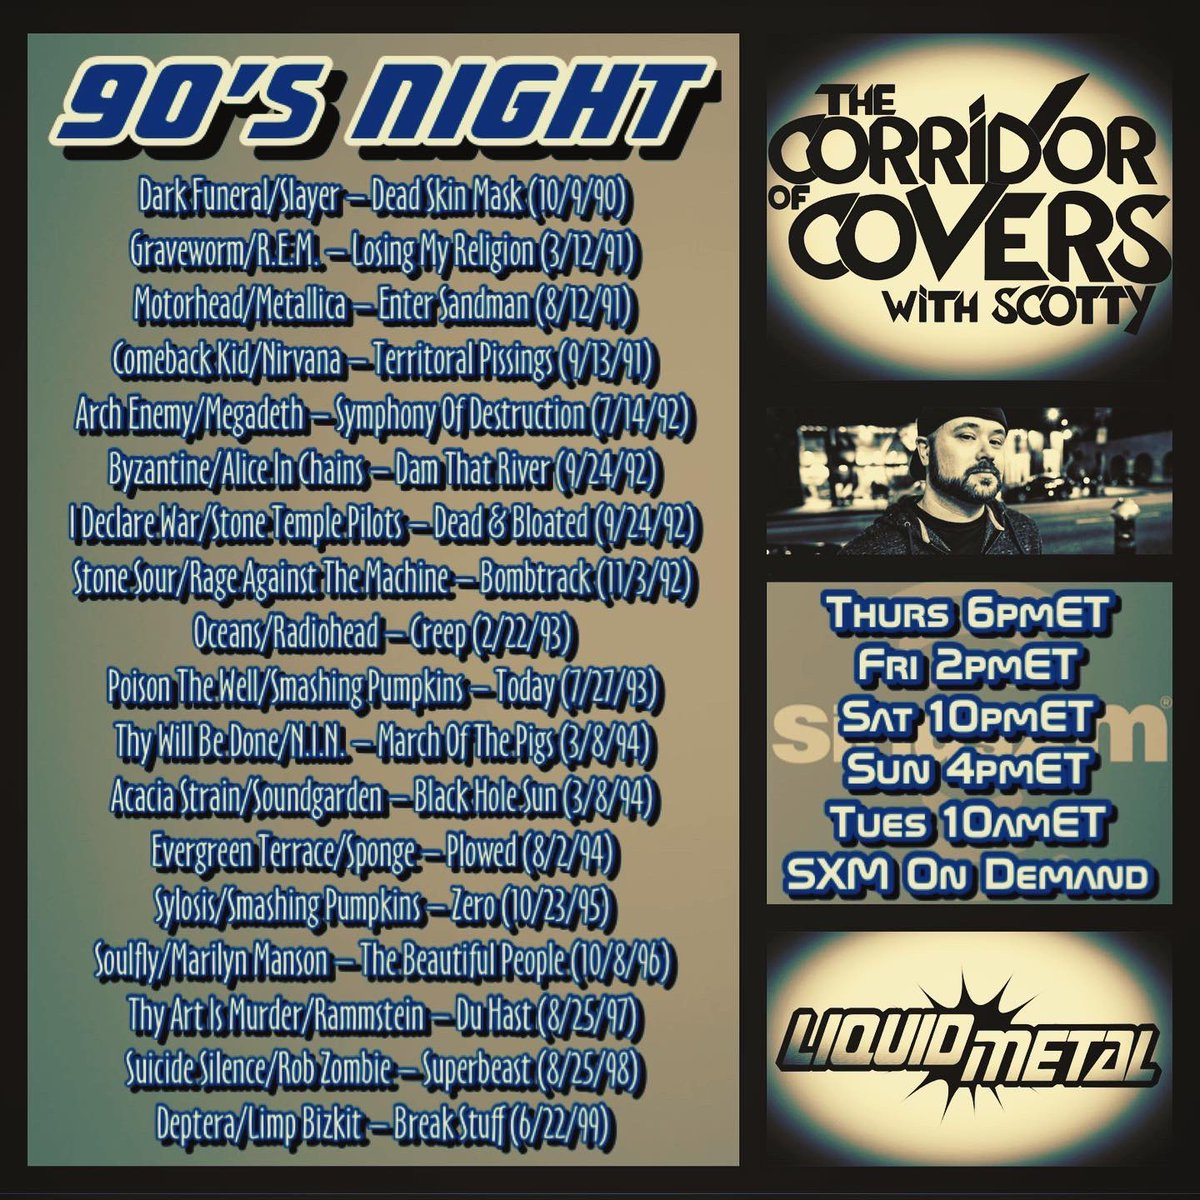 #corridorofcovers w/ #scotty on #sxmliquidmetal .. 90's night + Bonus Power Hour .. shout out an old venue from the 90s you saw shows/concerts at that is closed now, mine is Birch Hill/Old Bridge NJ #siriusxm #metal #heavymetal #coversong #metalcovers #nirvana #grunge #90spic.twitter.com/F4XzxLBgIJ